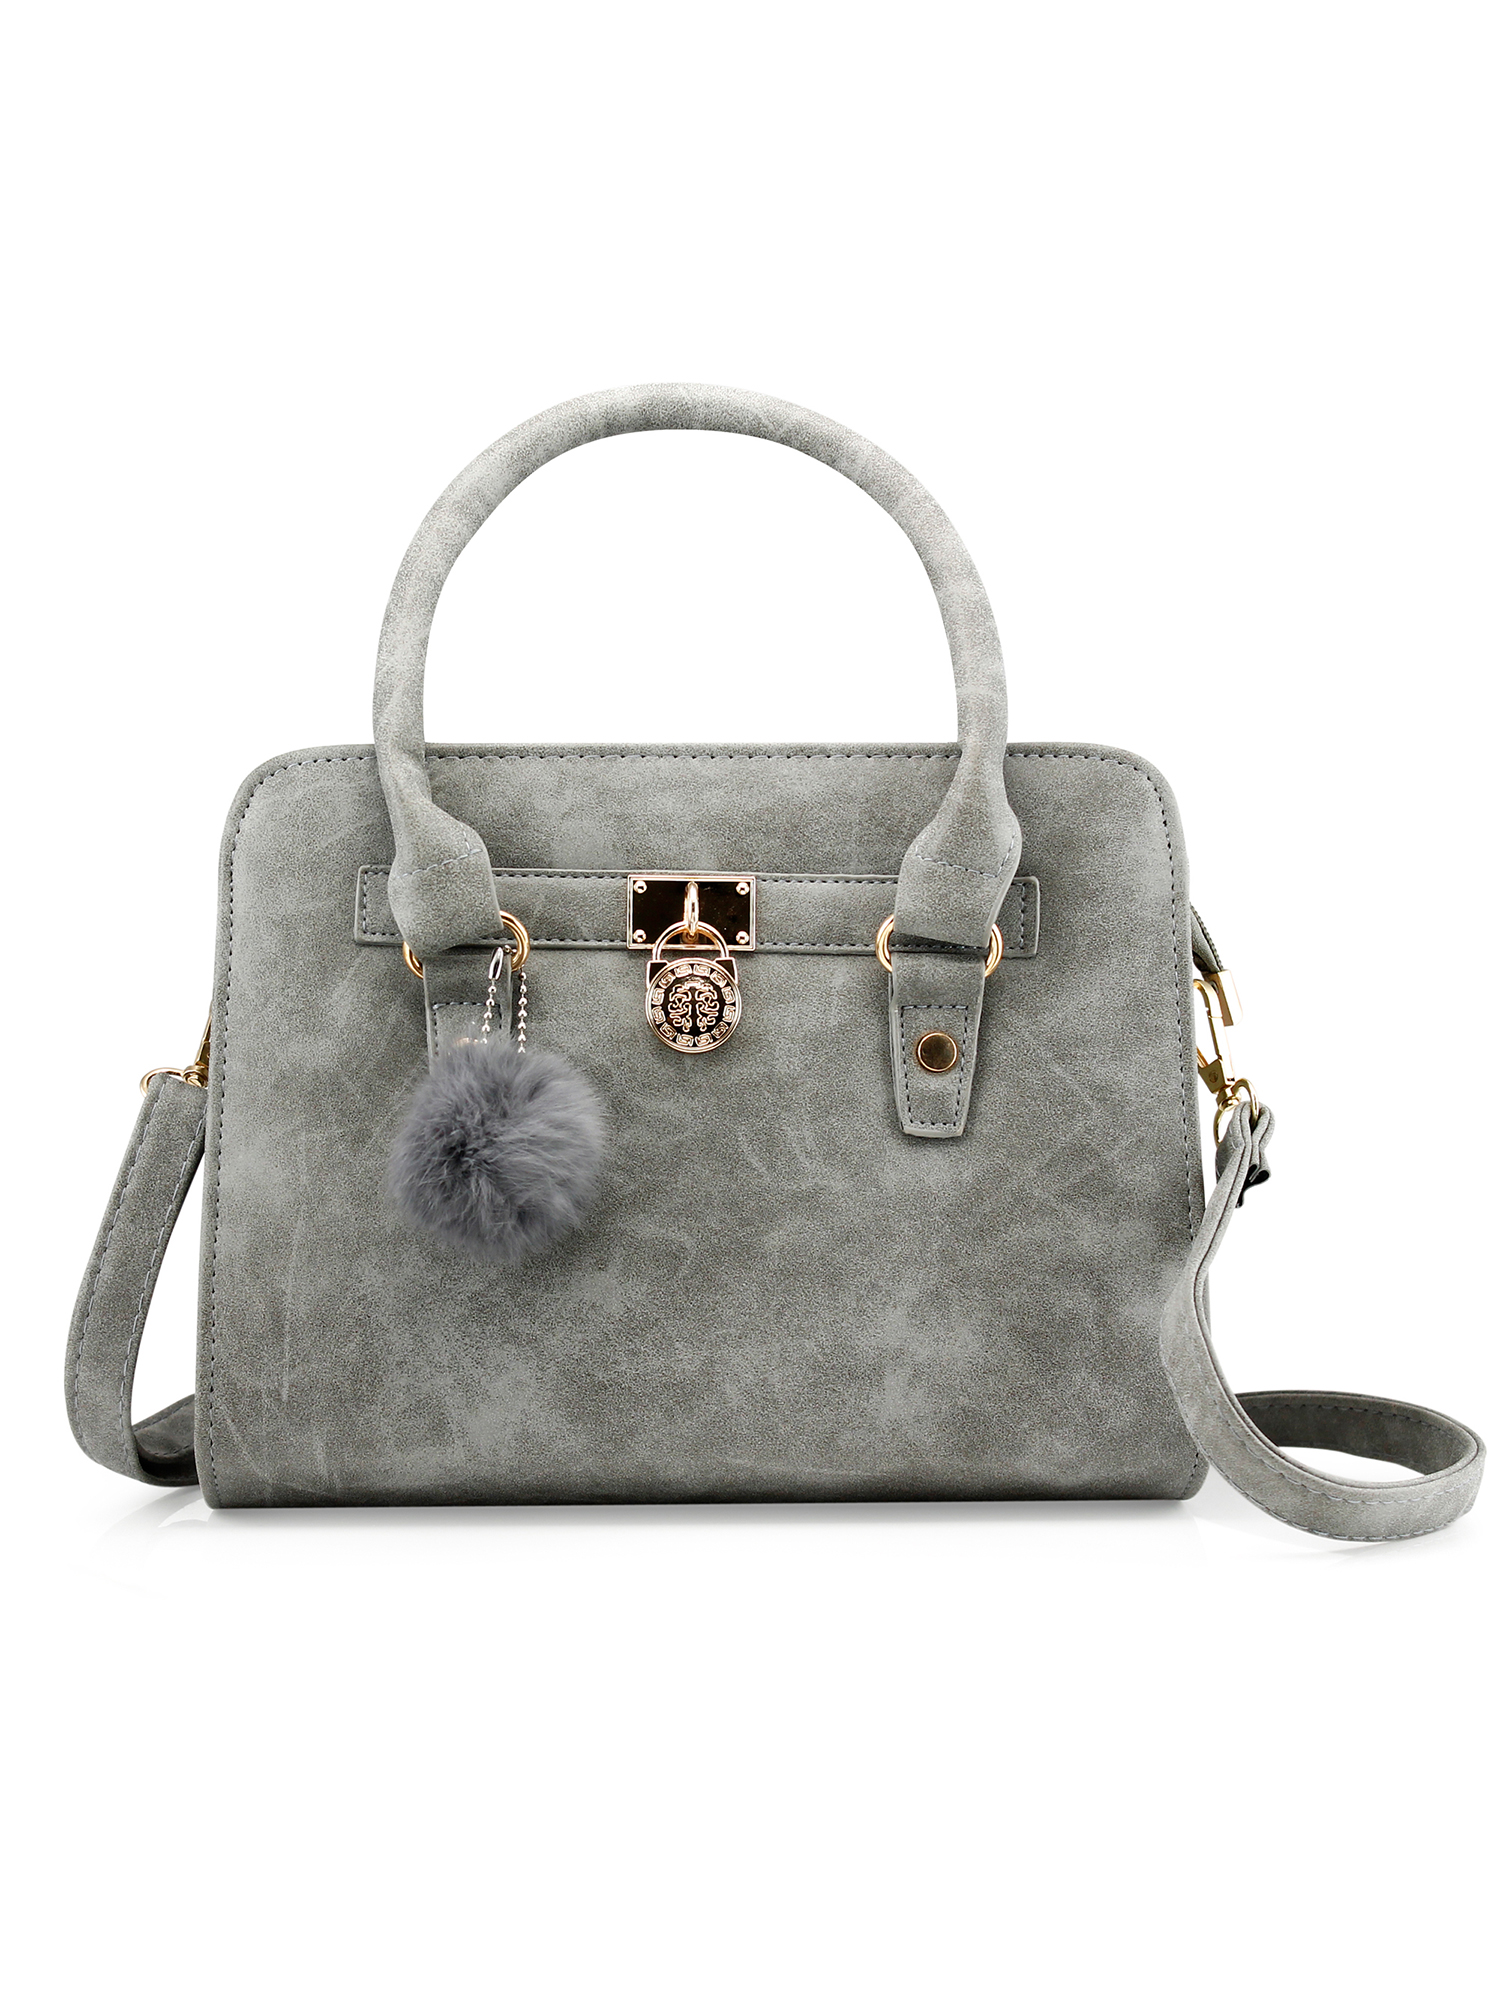 f04354a429 Gearonic - Lady Women Lock Faux Leather Tote Hobo Shoulder Bag Cute Purse  fur ball Satchel Fashion Luxury Handbag - Walmart.com